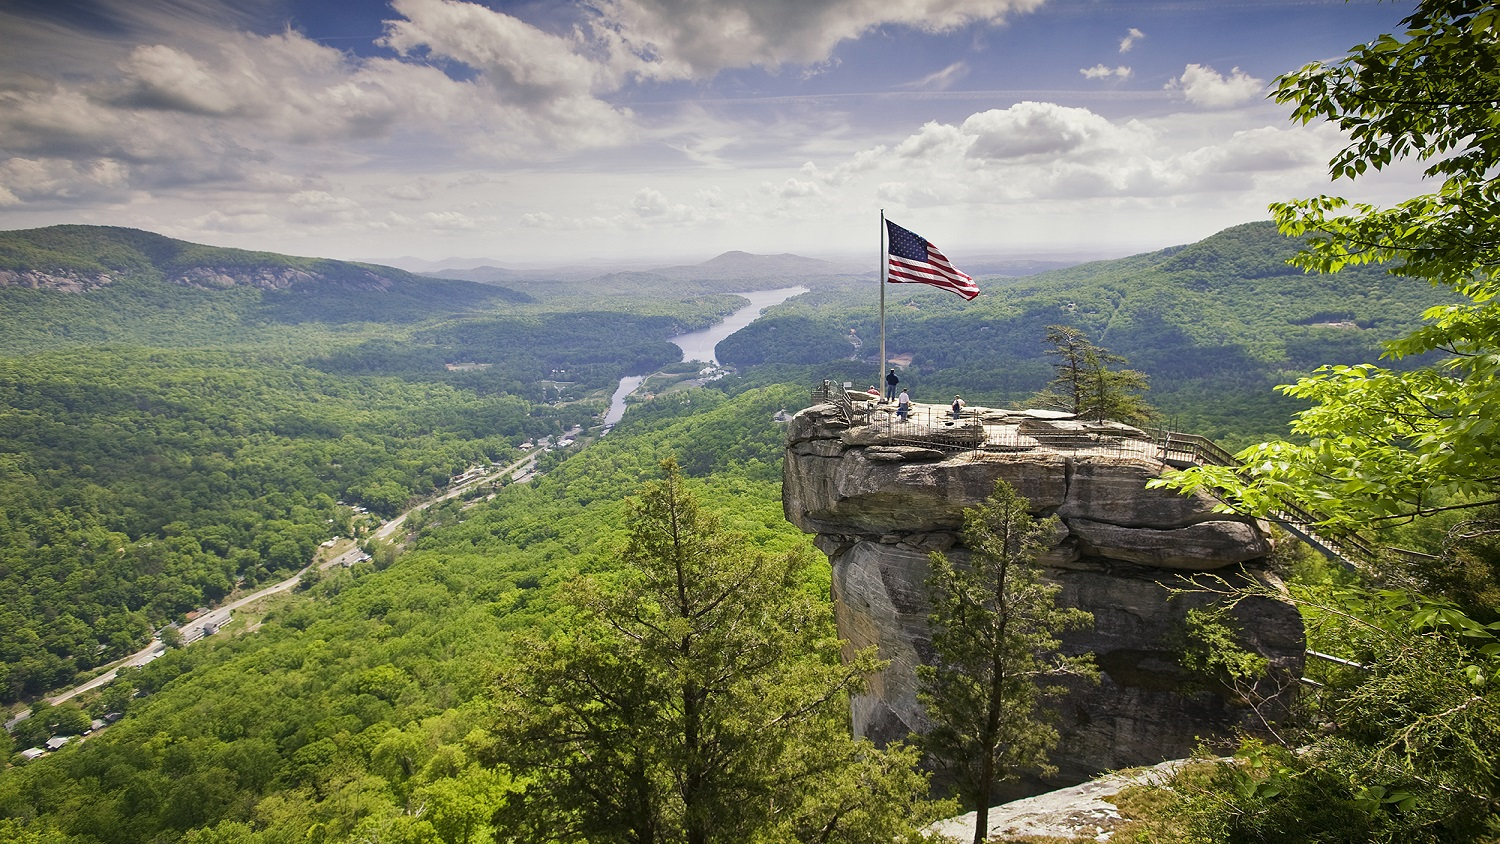 Which North Carolina State Park are you?, College of Natural Resources, Chimney Rock Sate Park courtesy Steven McBride